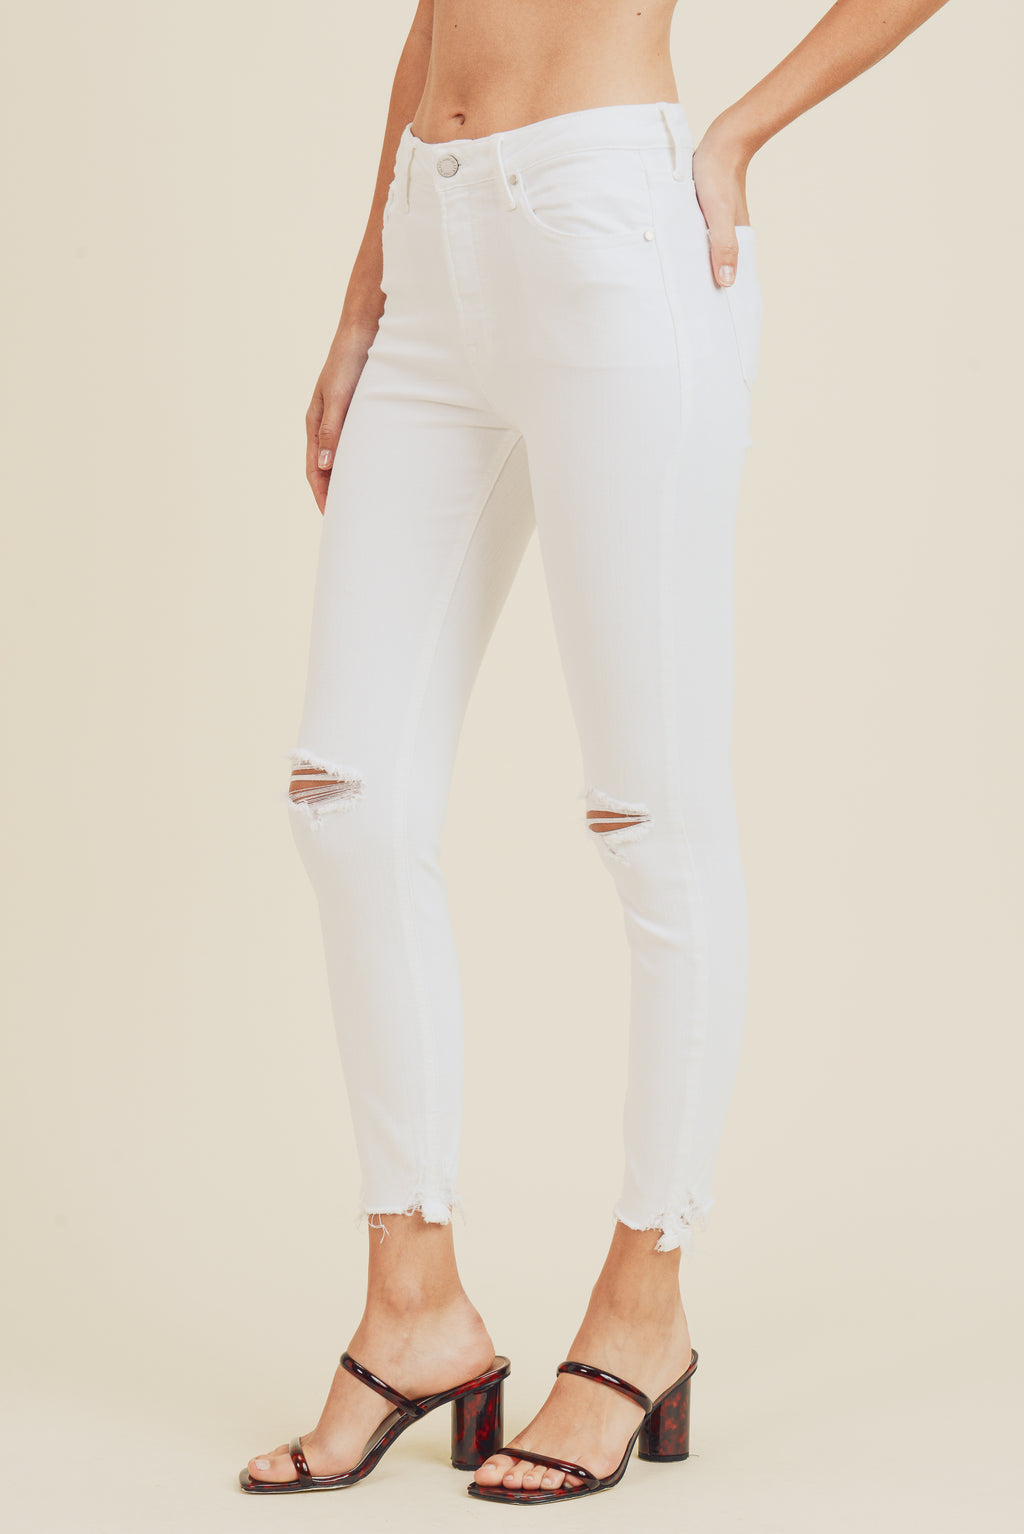 High Rise Destroyed White Denim Jean